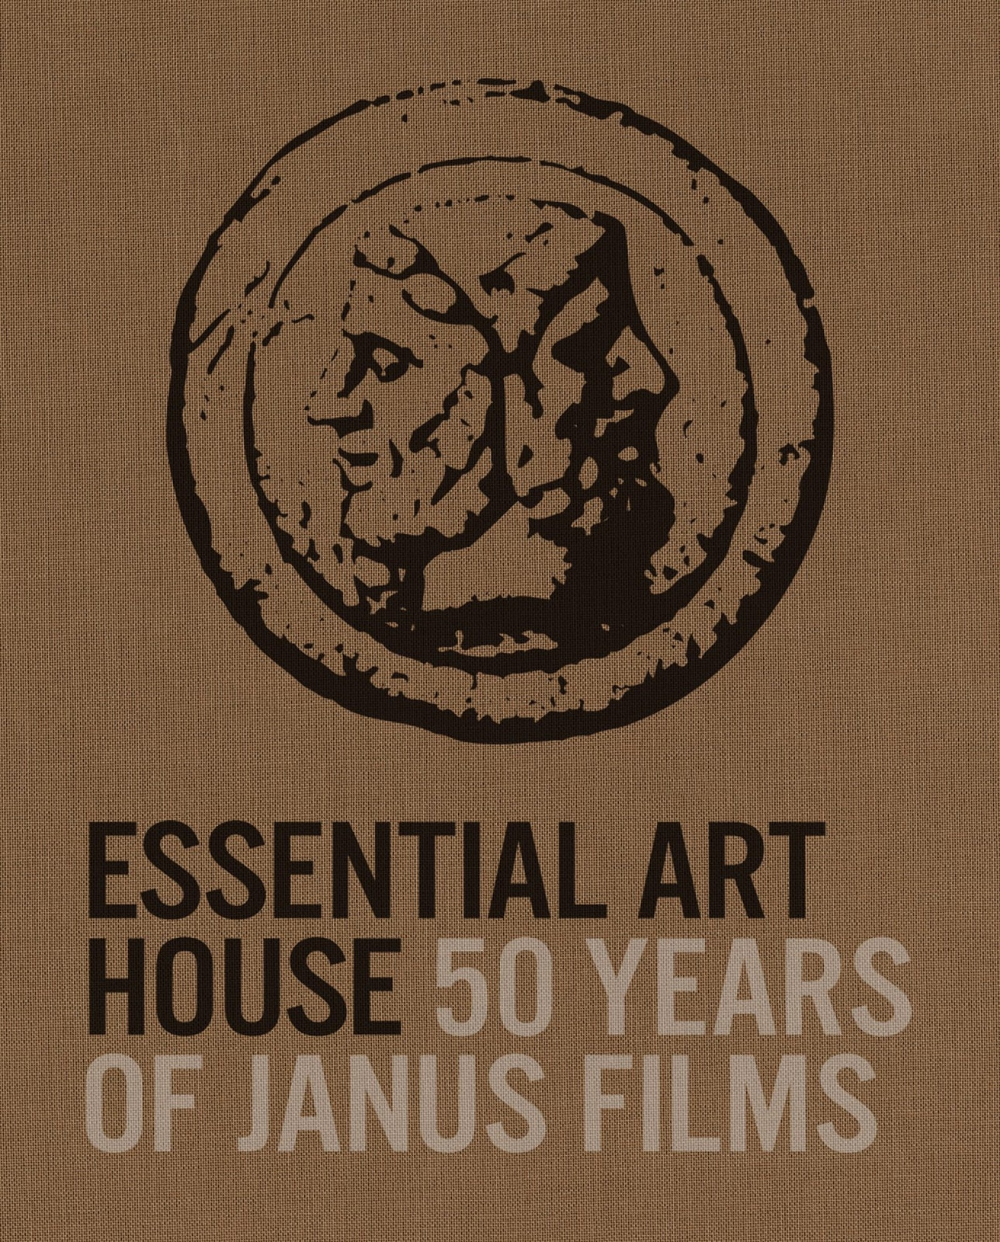 Essential Art House 50 Years Of Janus Films The Criterion Collection In 2020 Art House Movies Film Home Art